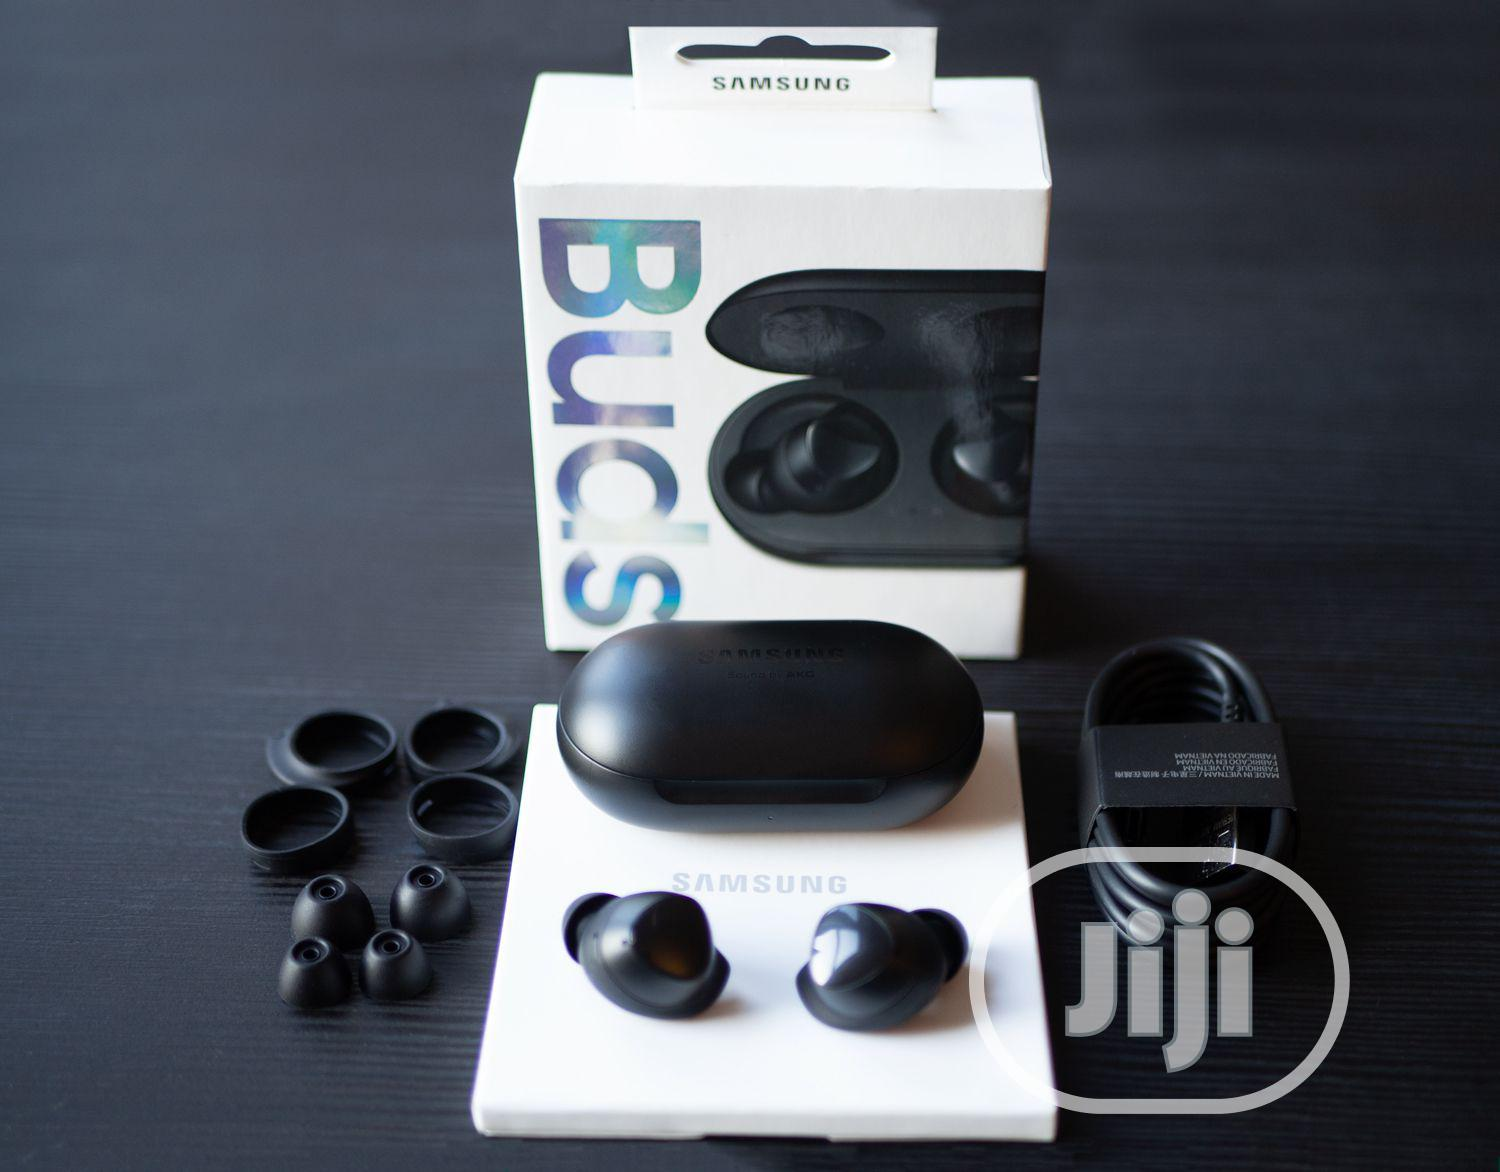 Samsung Galaxy Buds Bluetooth True Wireless Earbuds In Ikeja Headphones Gadget Suite Jiji Ng For Sale In Ikeja Buy Headphones From Gadget Suite On Jiji Ng